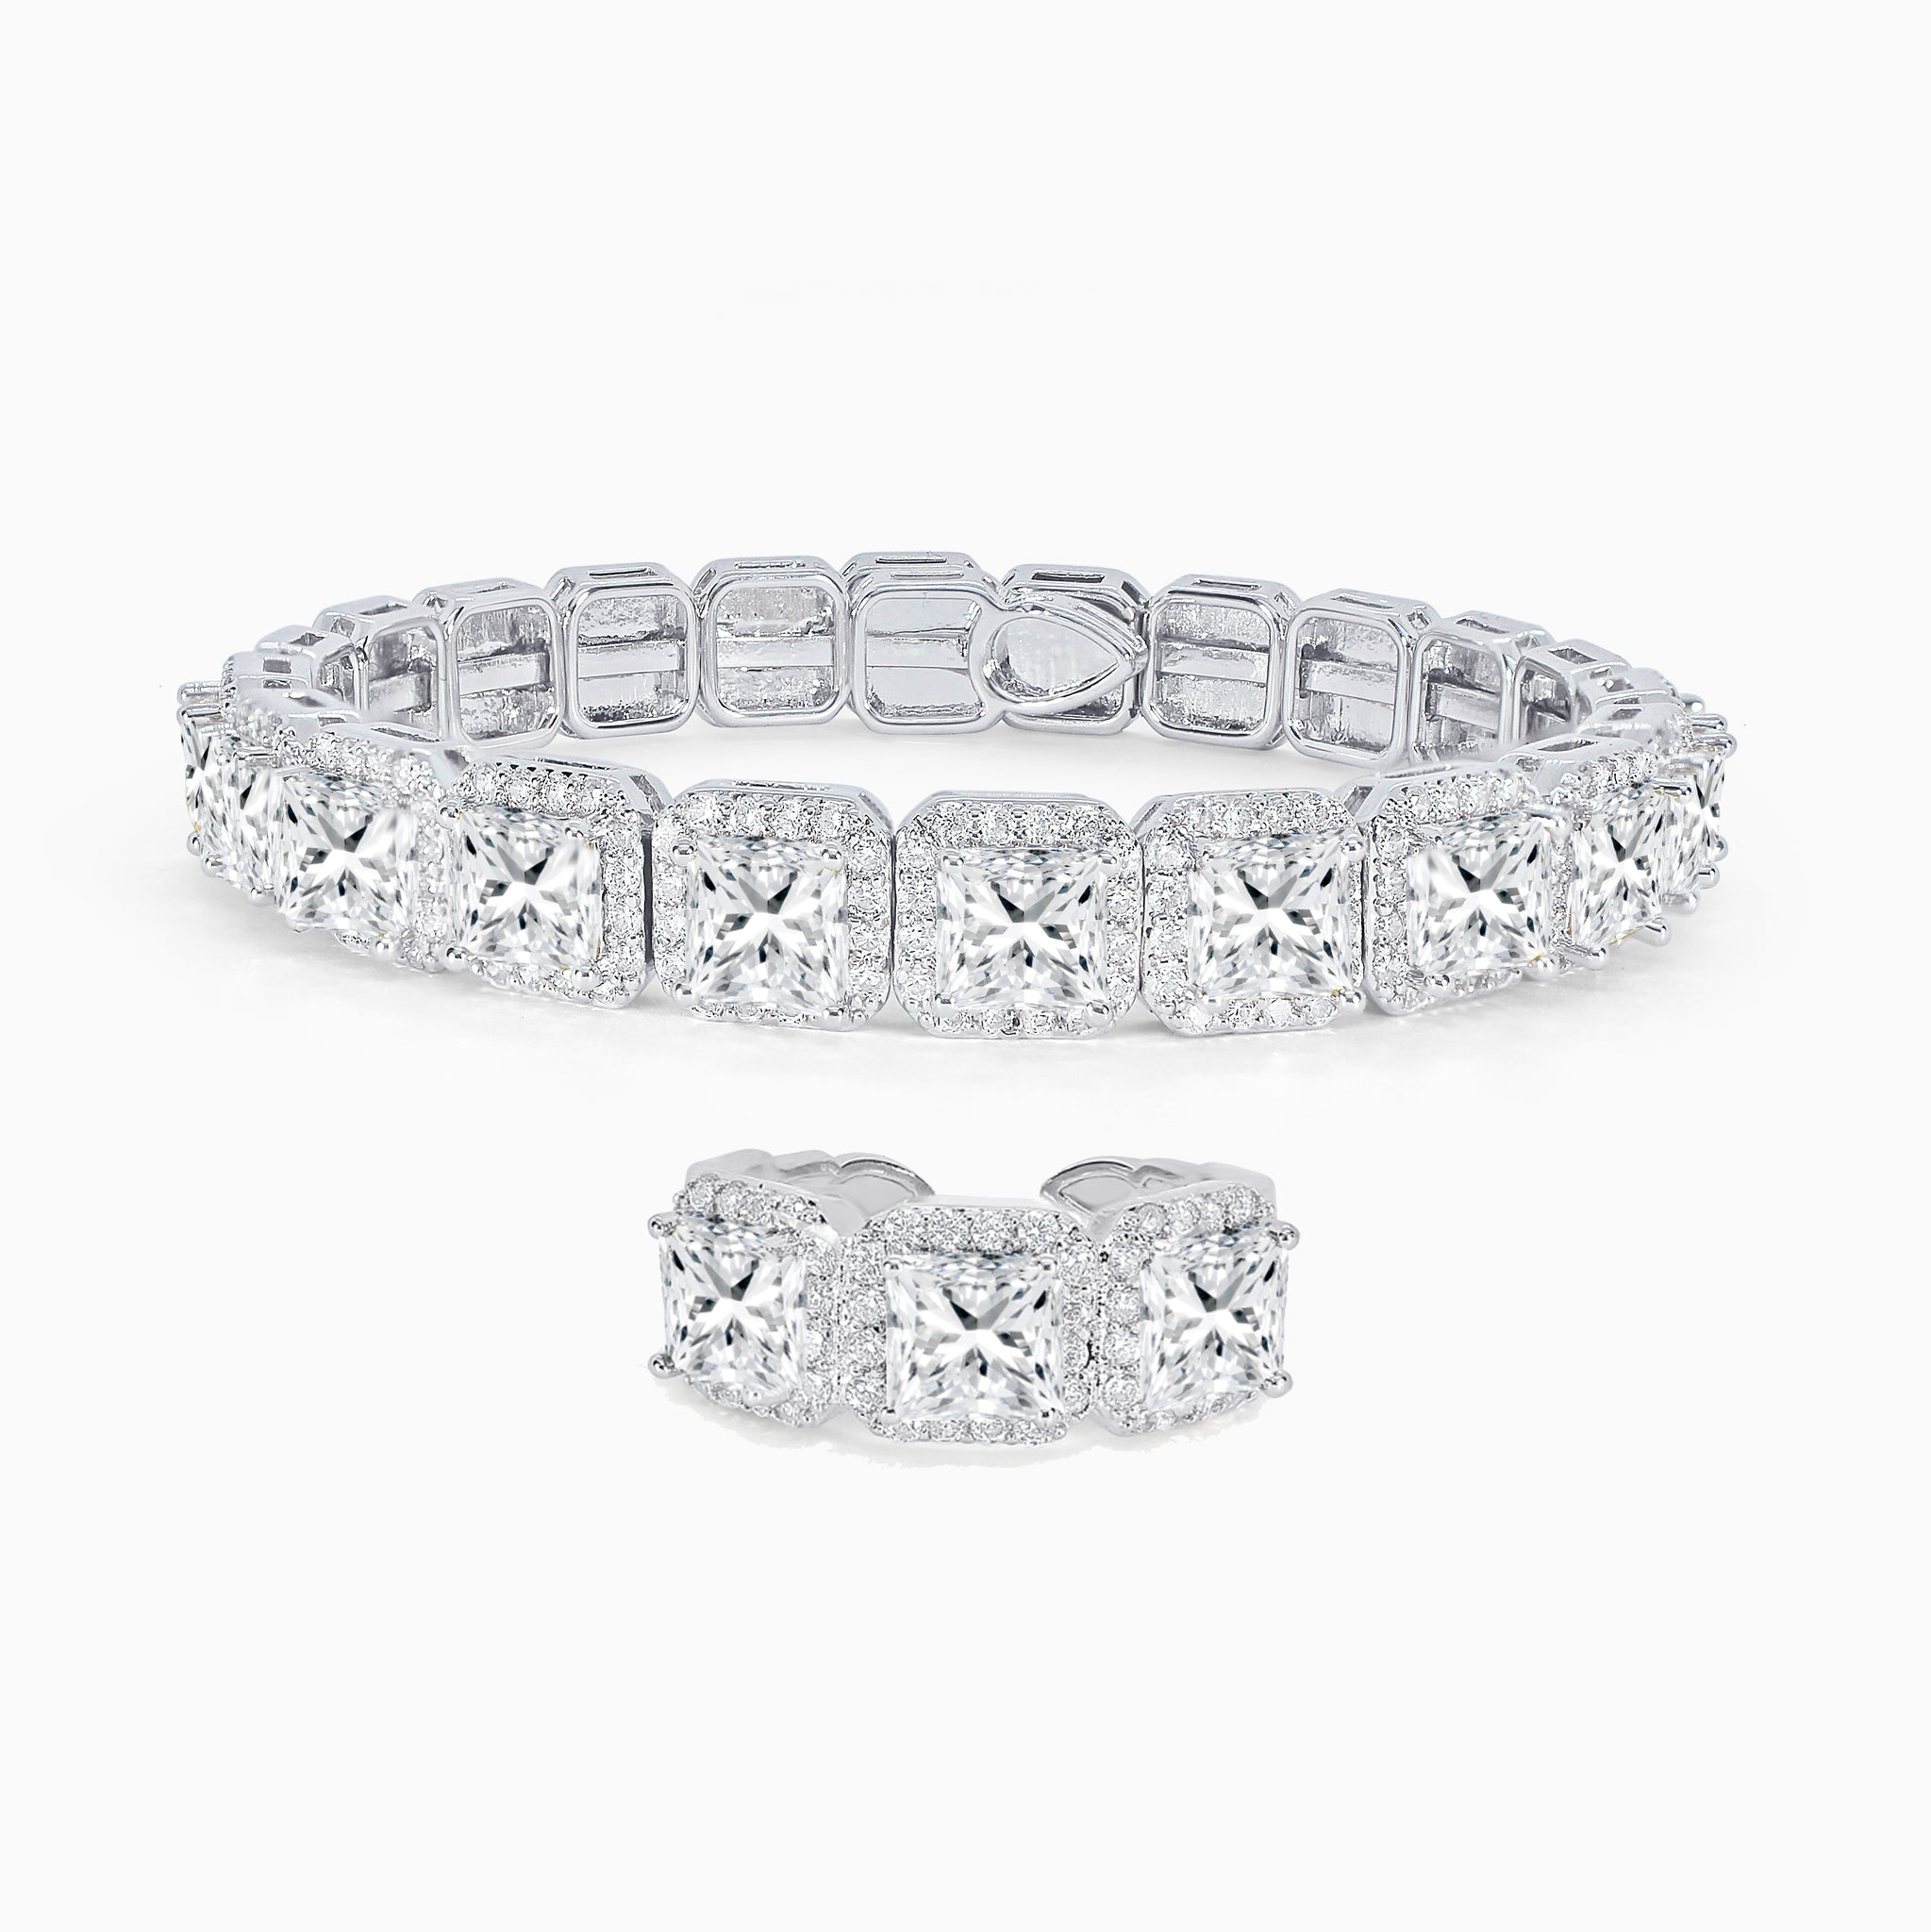 Princess Cut Bracelet & Ring Set - Clear White